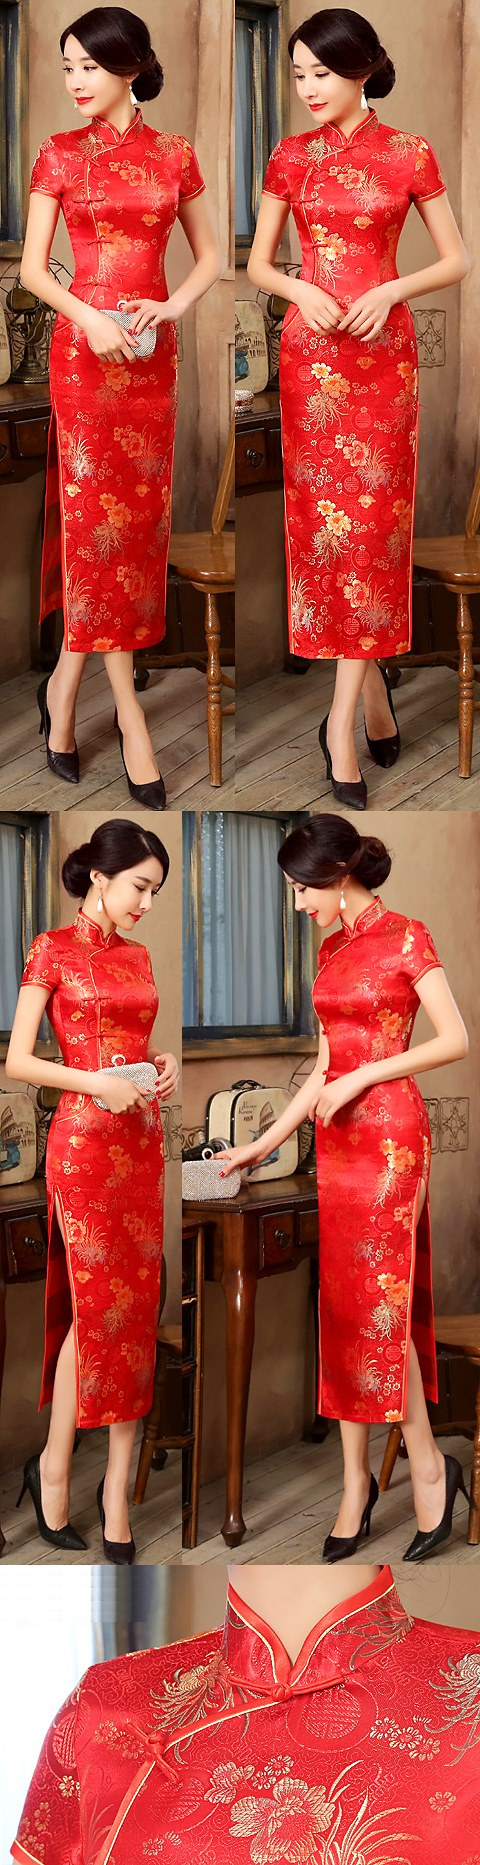 Short-sleeve Long-length Brocade Cheongsam (RM)